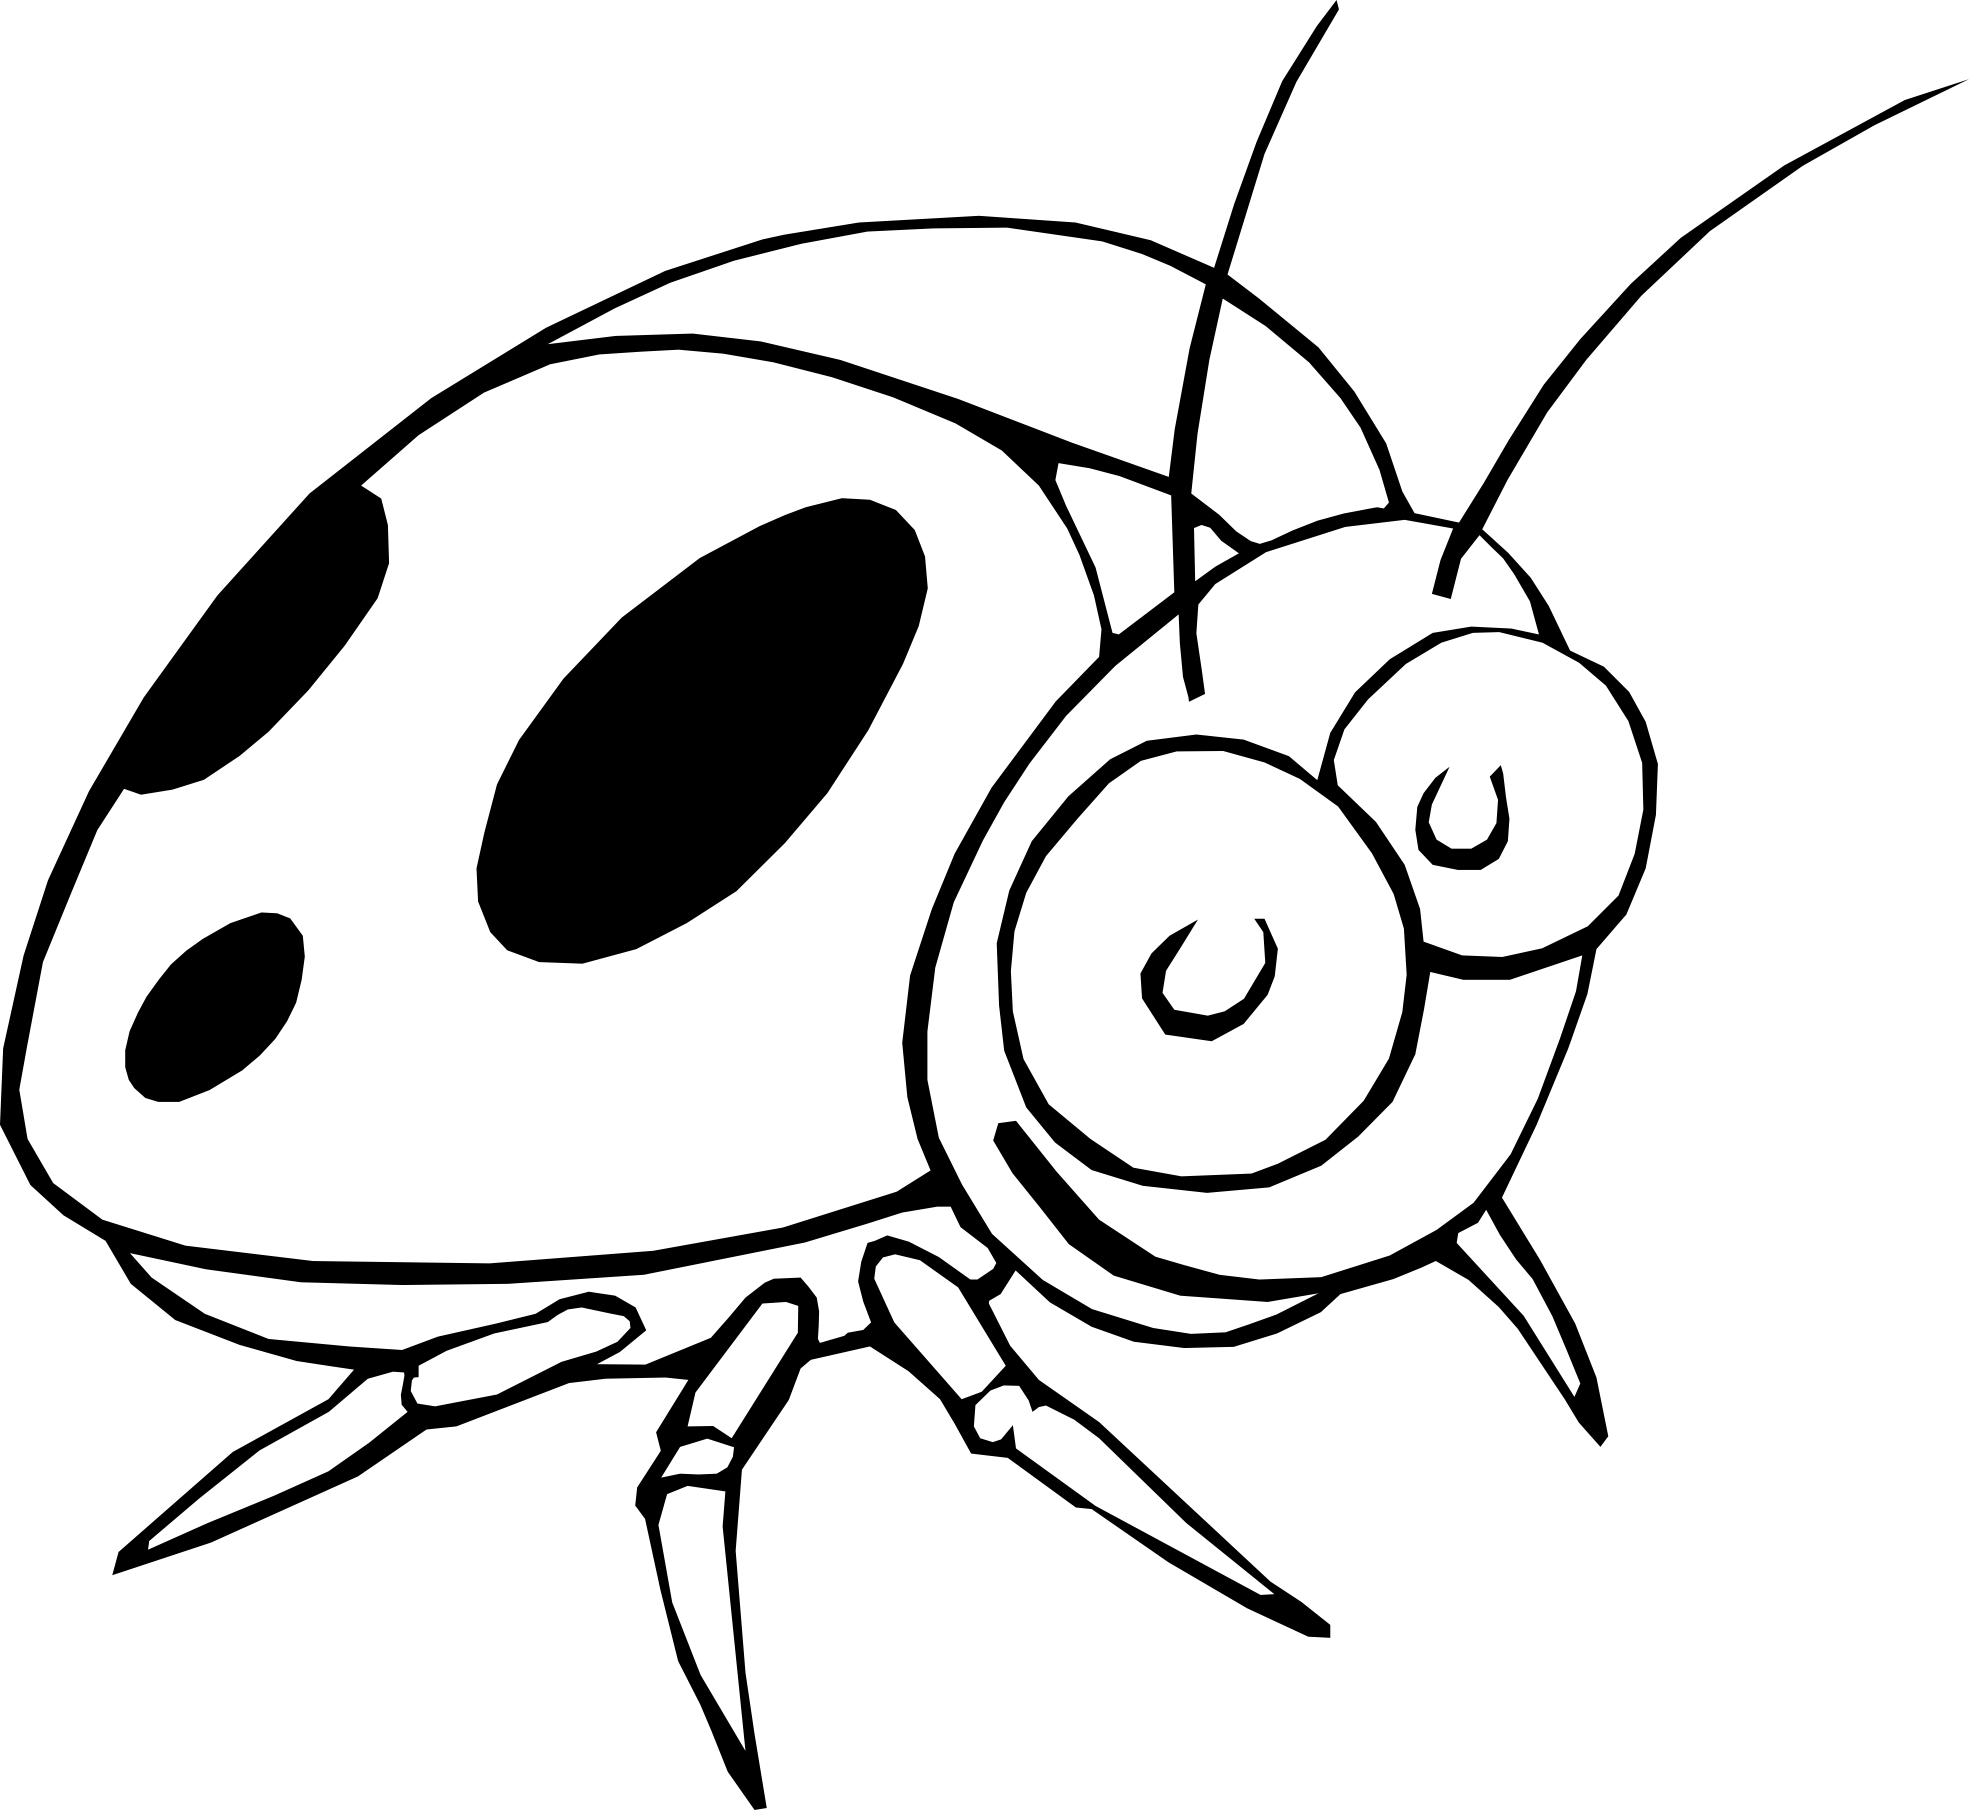 Ladybug Outline Clipart Coloring Page Wikiclipart Clip Art Free Clip Art Clipart Black And White